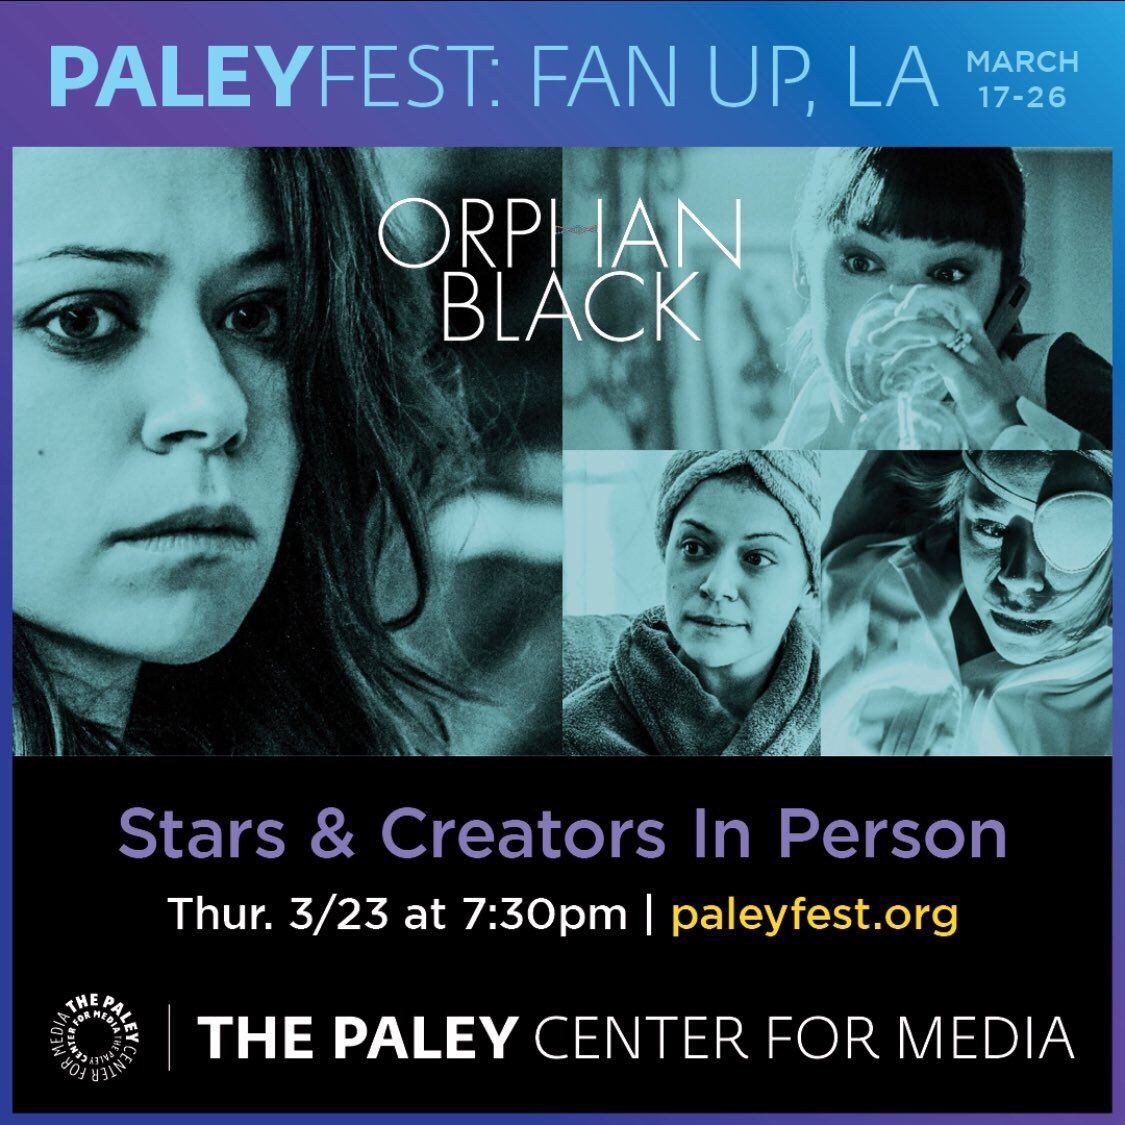 We thank @citi, the official card of #PaleyFest. #OrphanBlack https://t.co/vnly9bEAhS